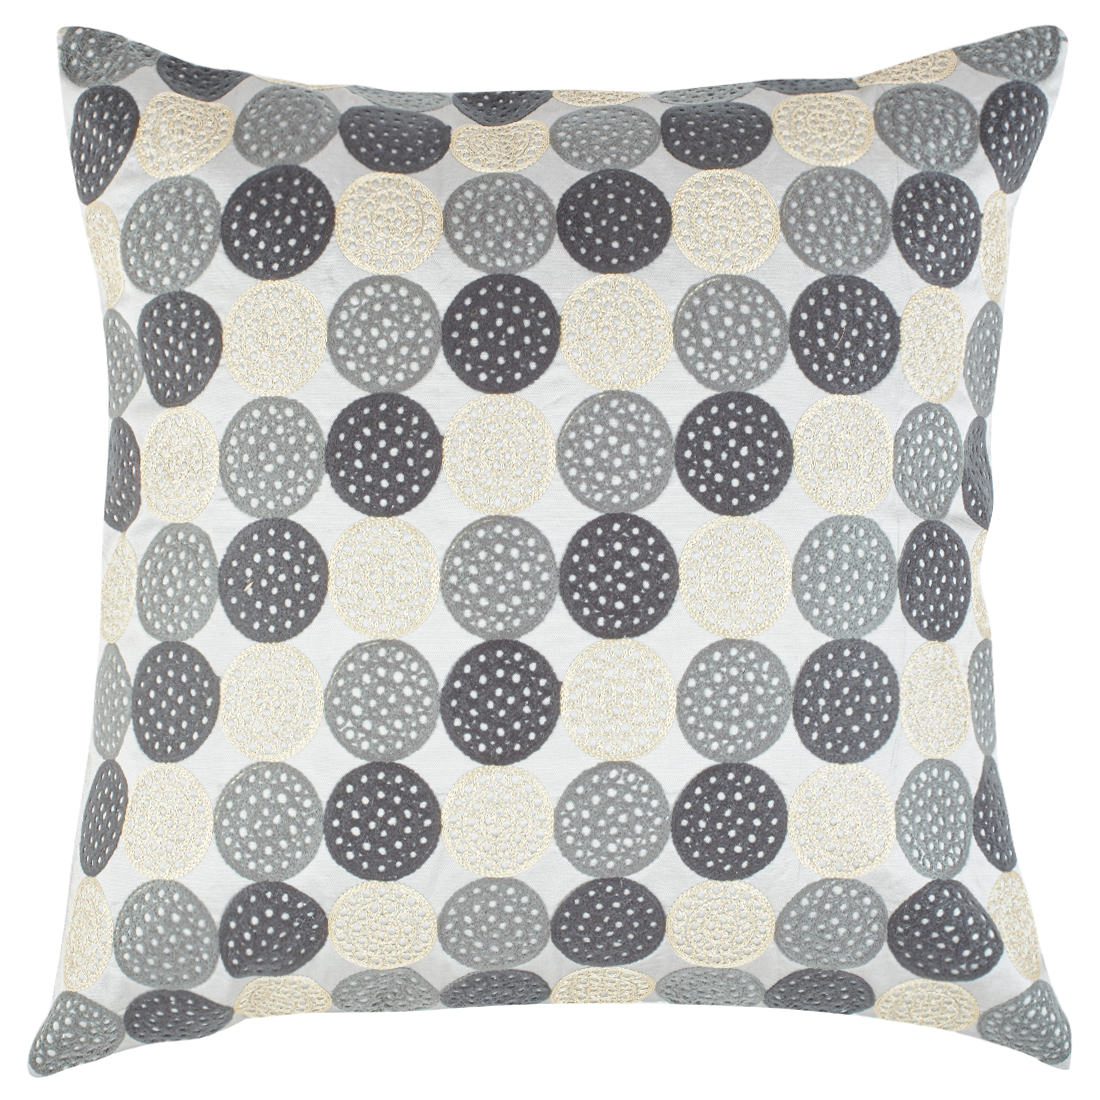 Modern Circle Polyester Cushion Covers in Grey Colour by Living Essence